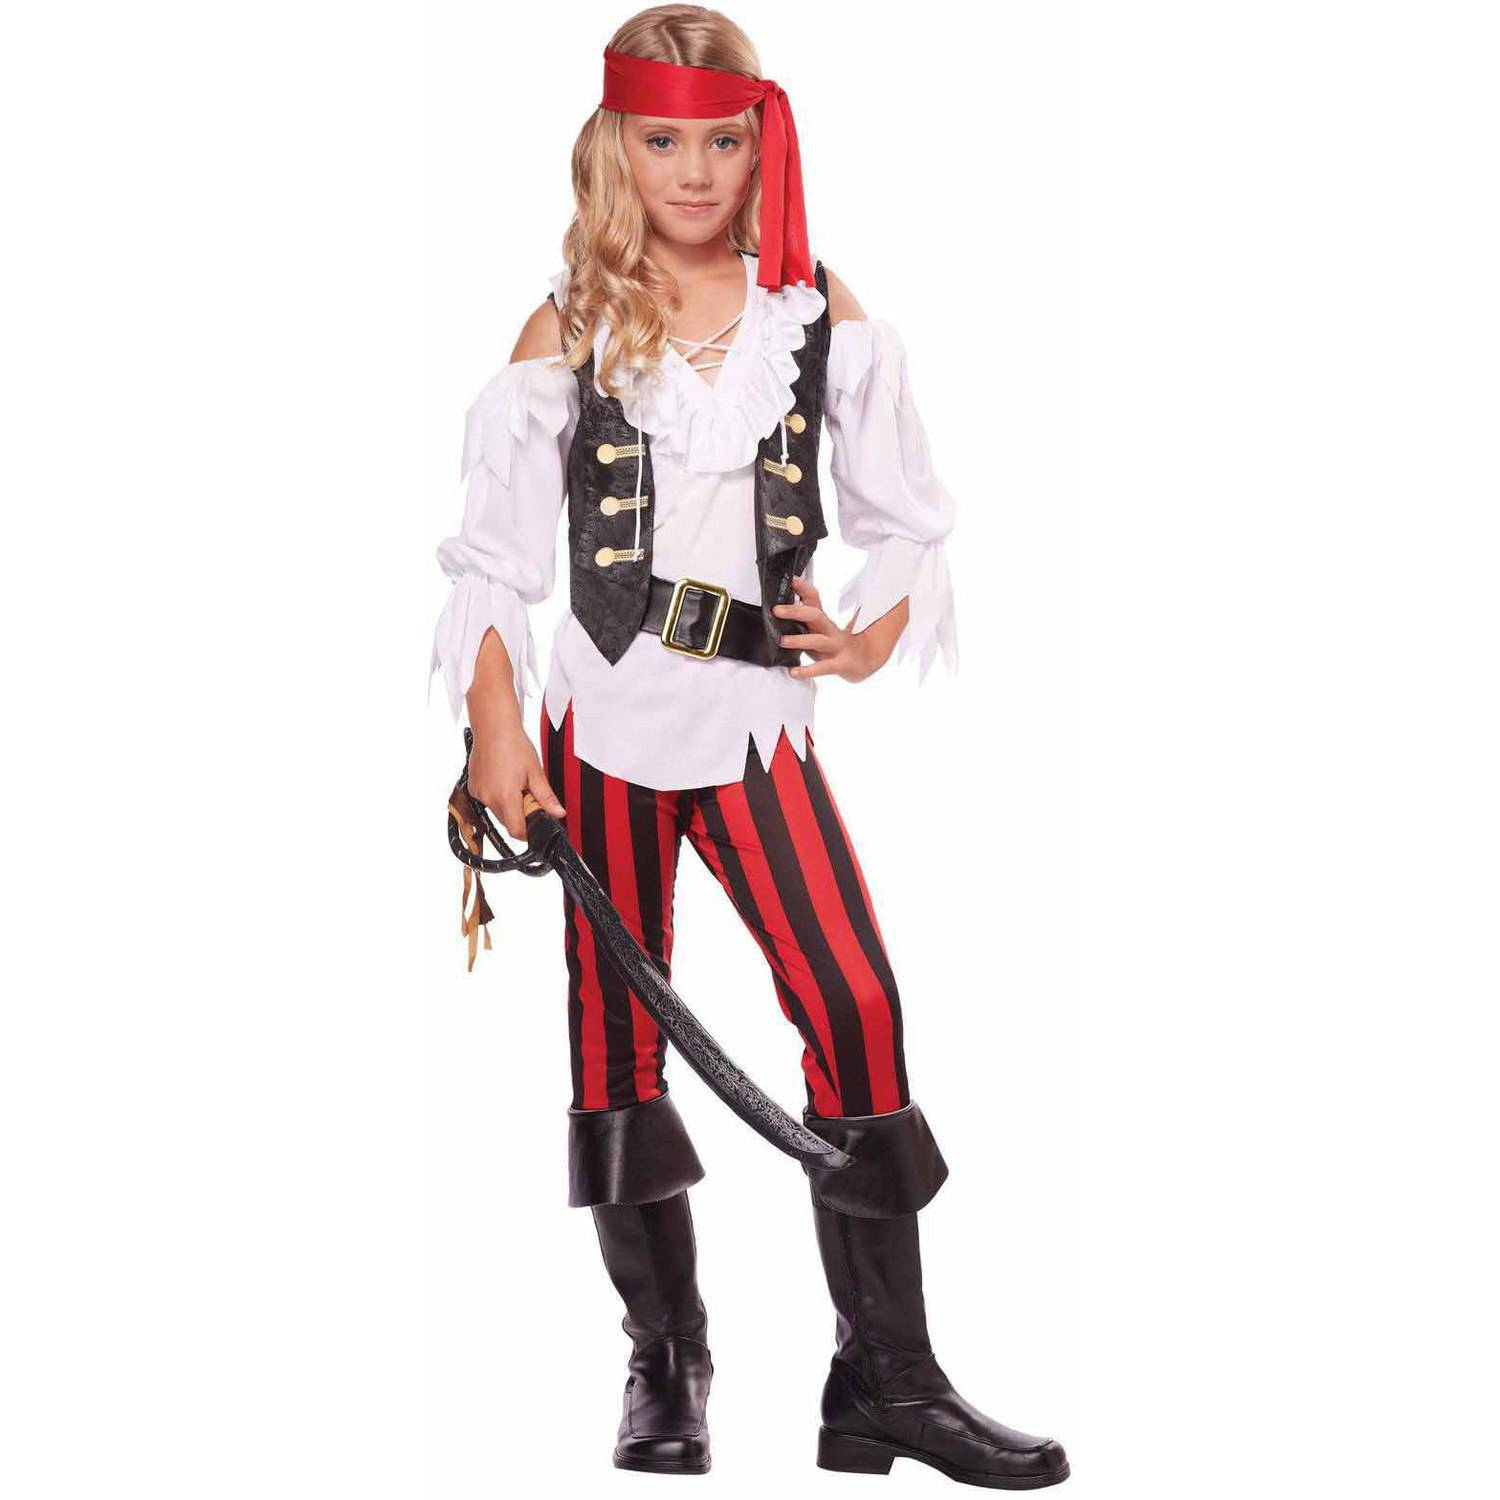 Posh Pirate Girls' Child Halloween Costume by Generic